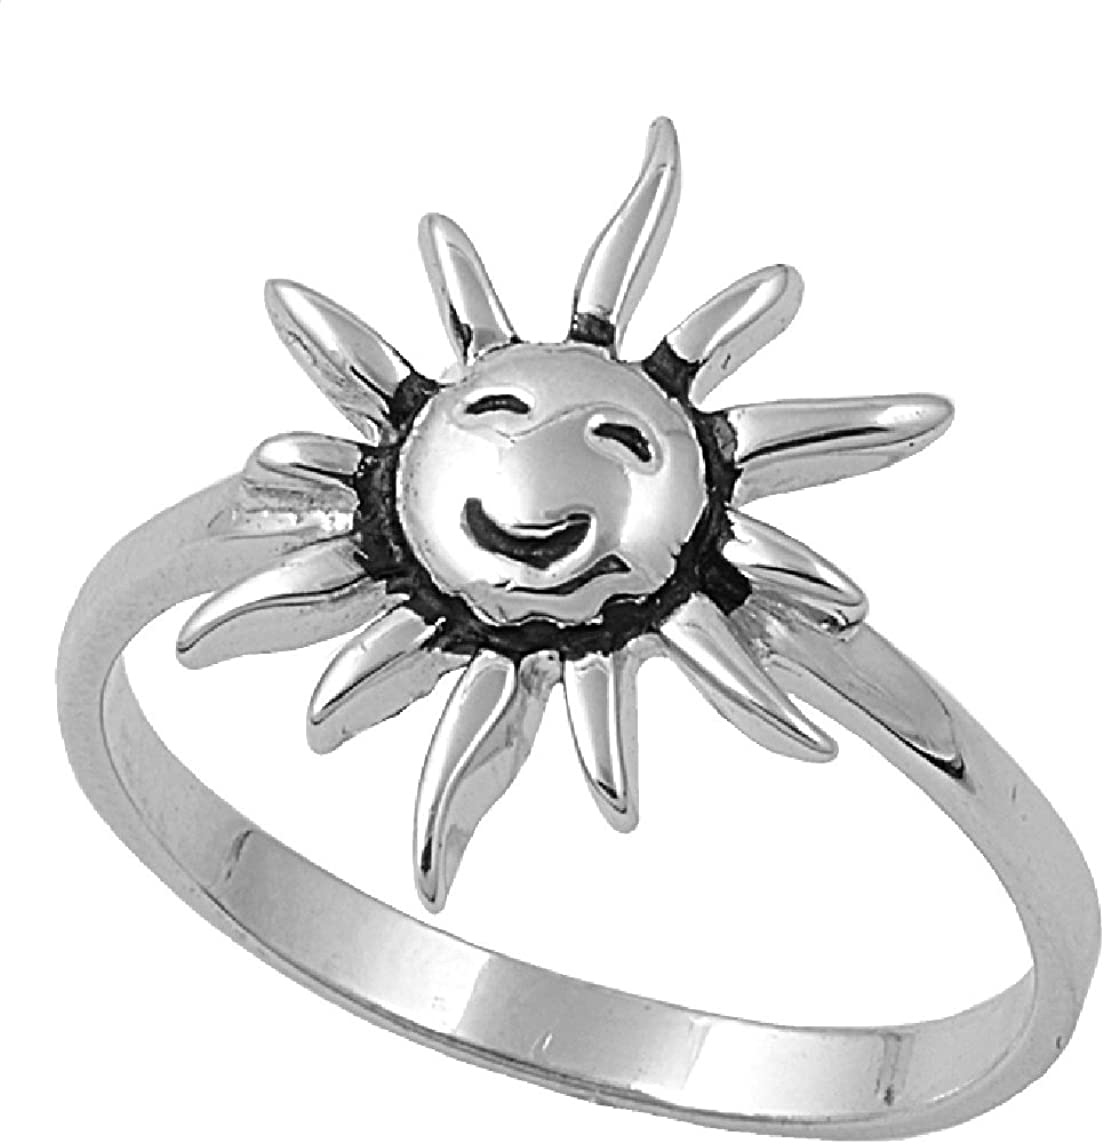 Princess Kylie 925 Sterling Silver Smiling Sun Ring